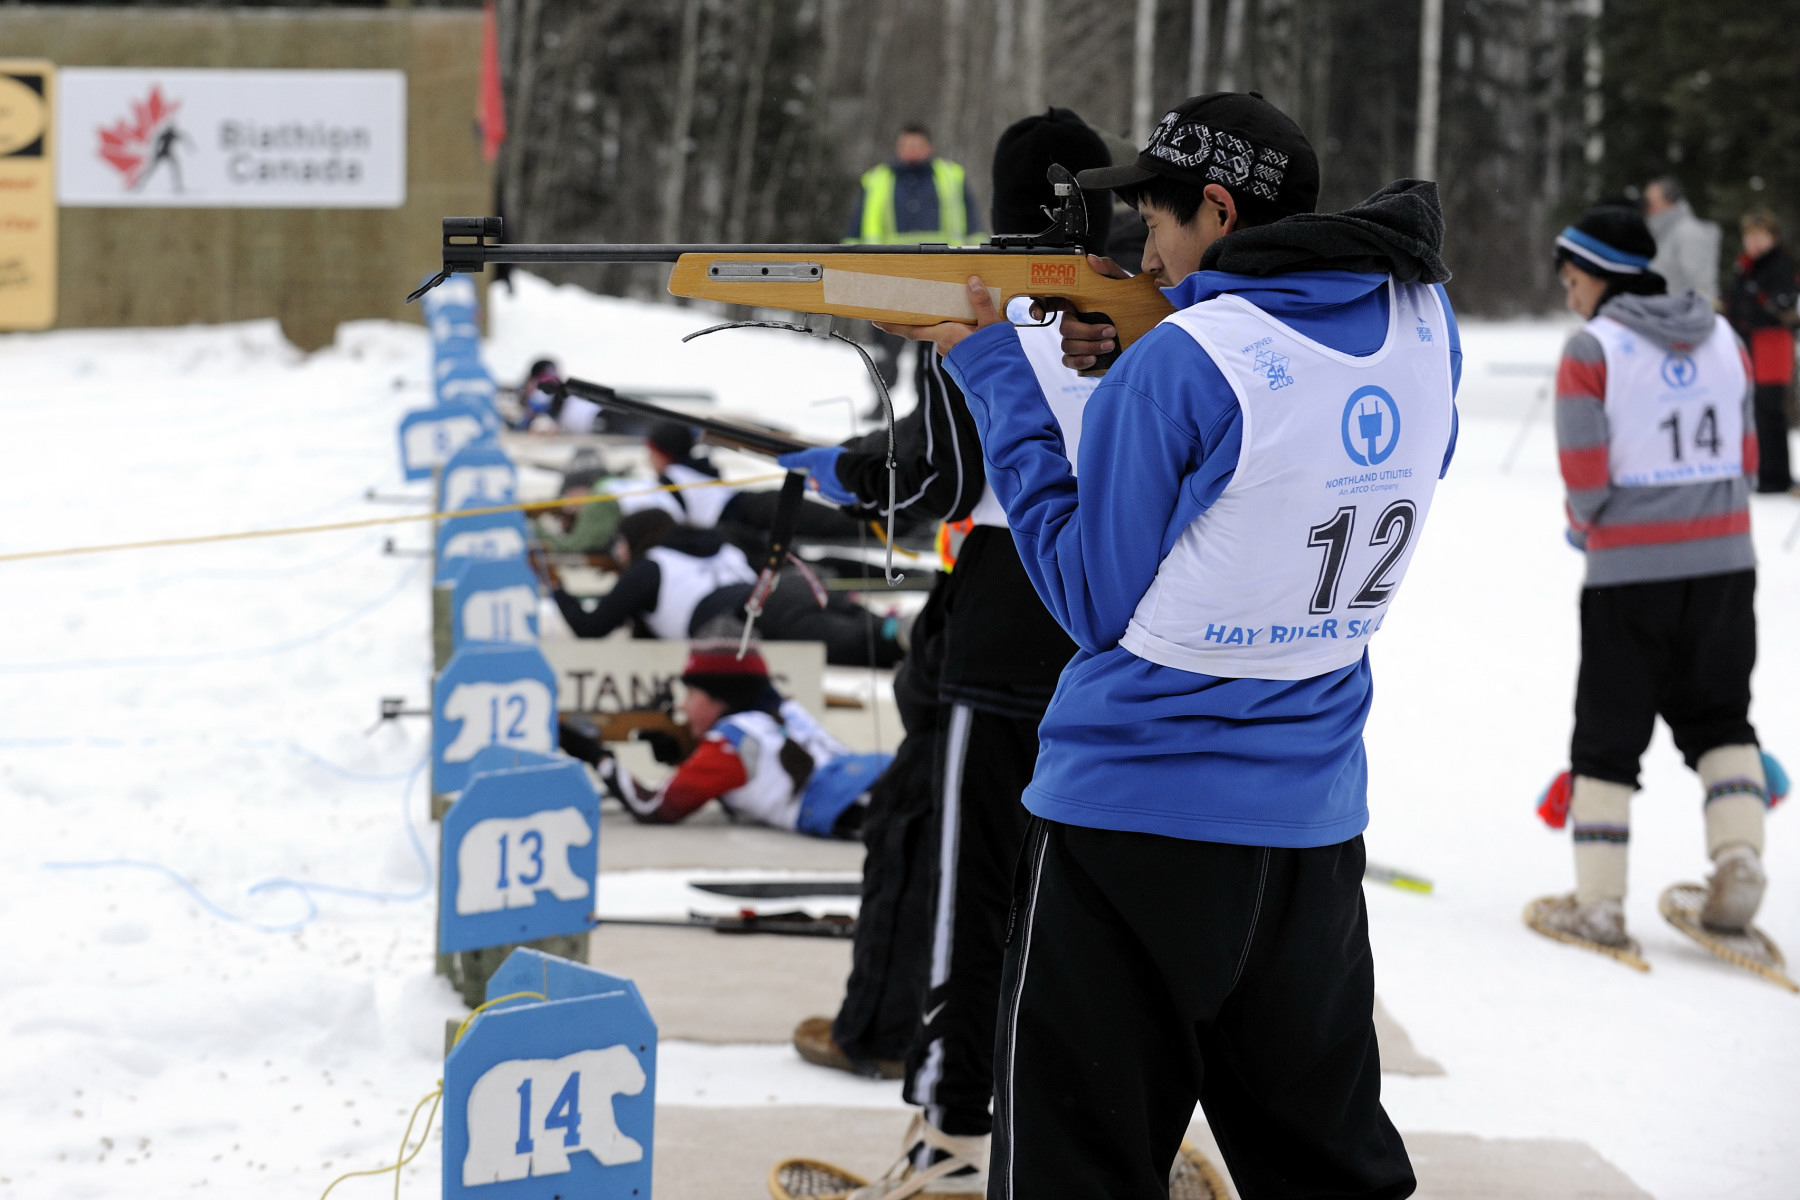 The 22nd Arctic Winter Games, a circumpolar sport competition, will be held in the city of Whitehorse, in the Yukon Territory, in March 2012.